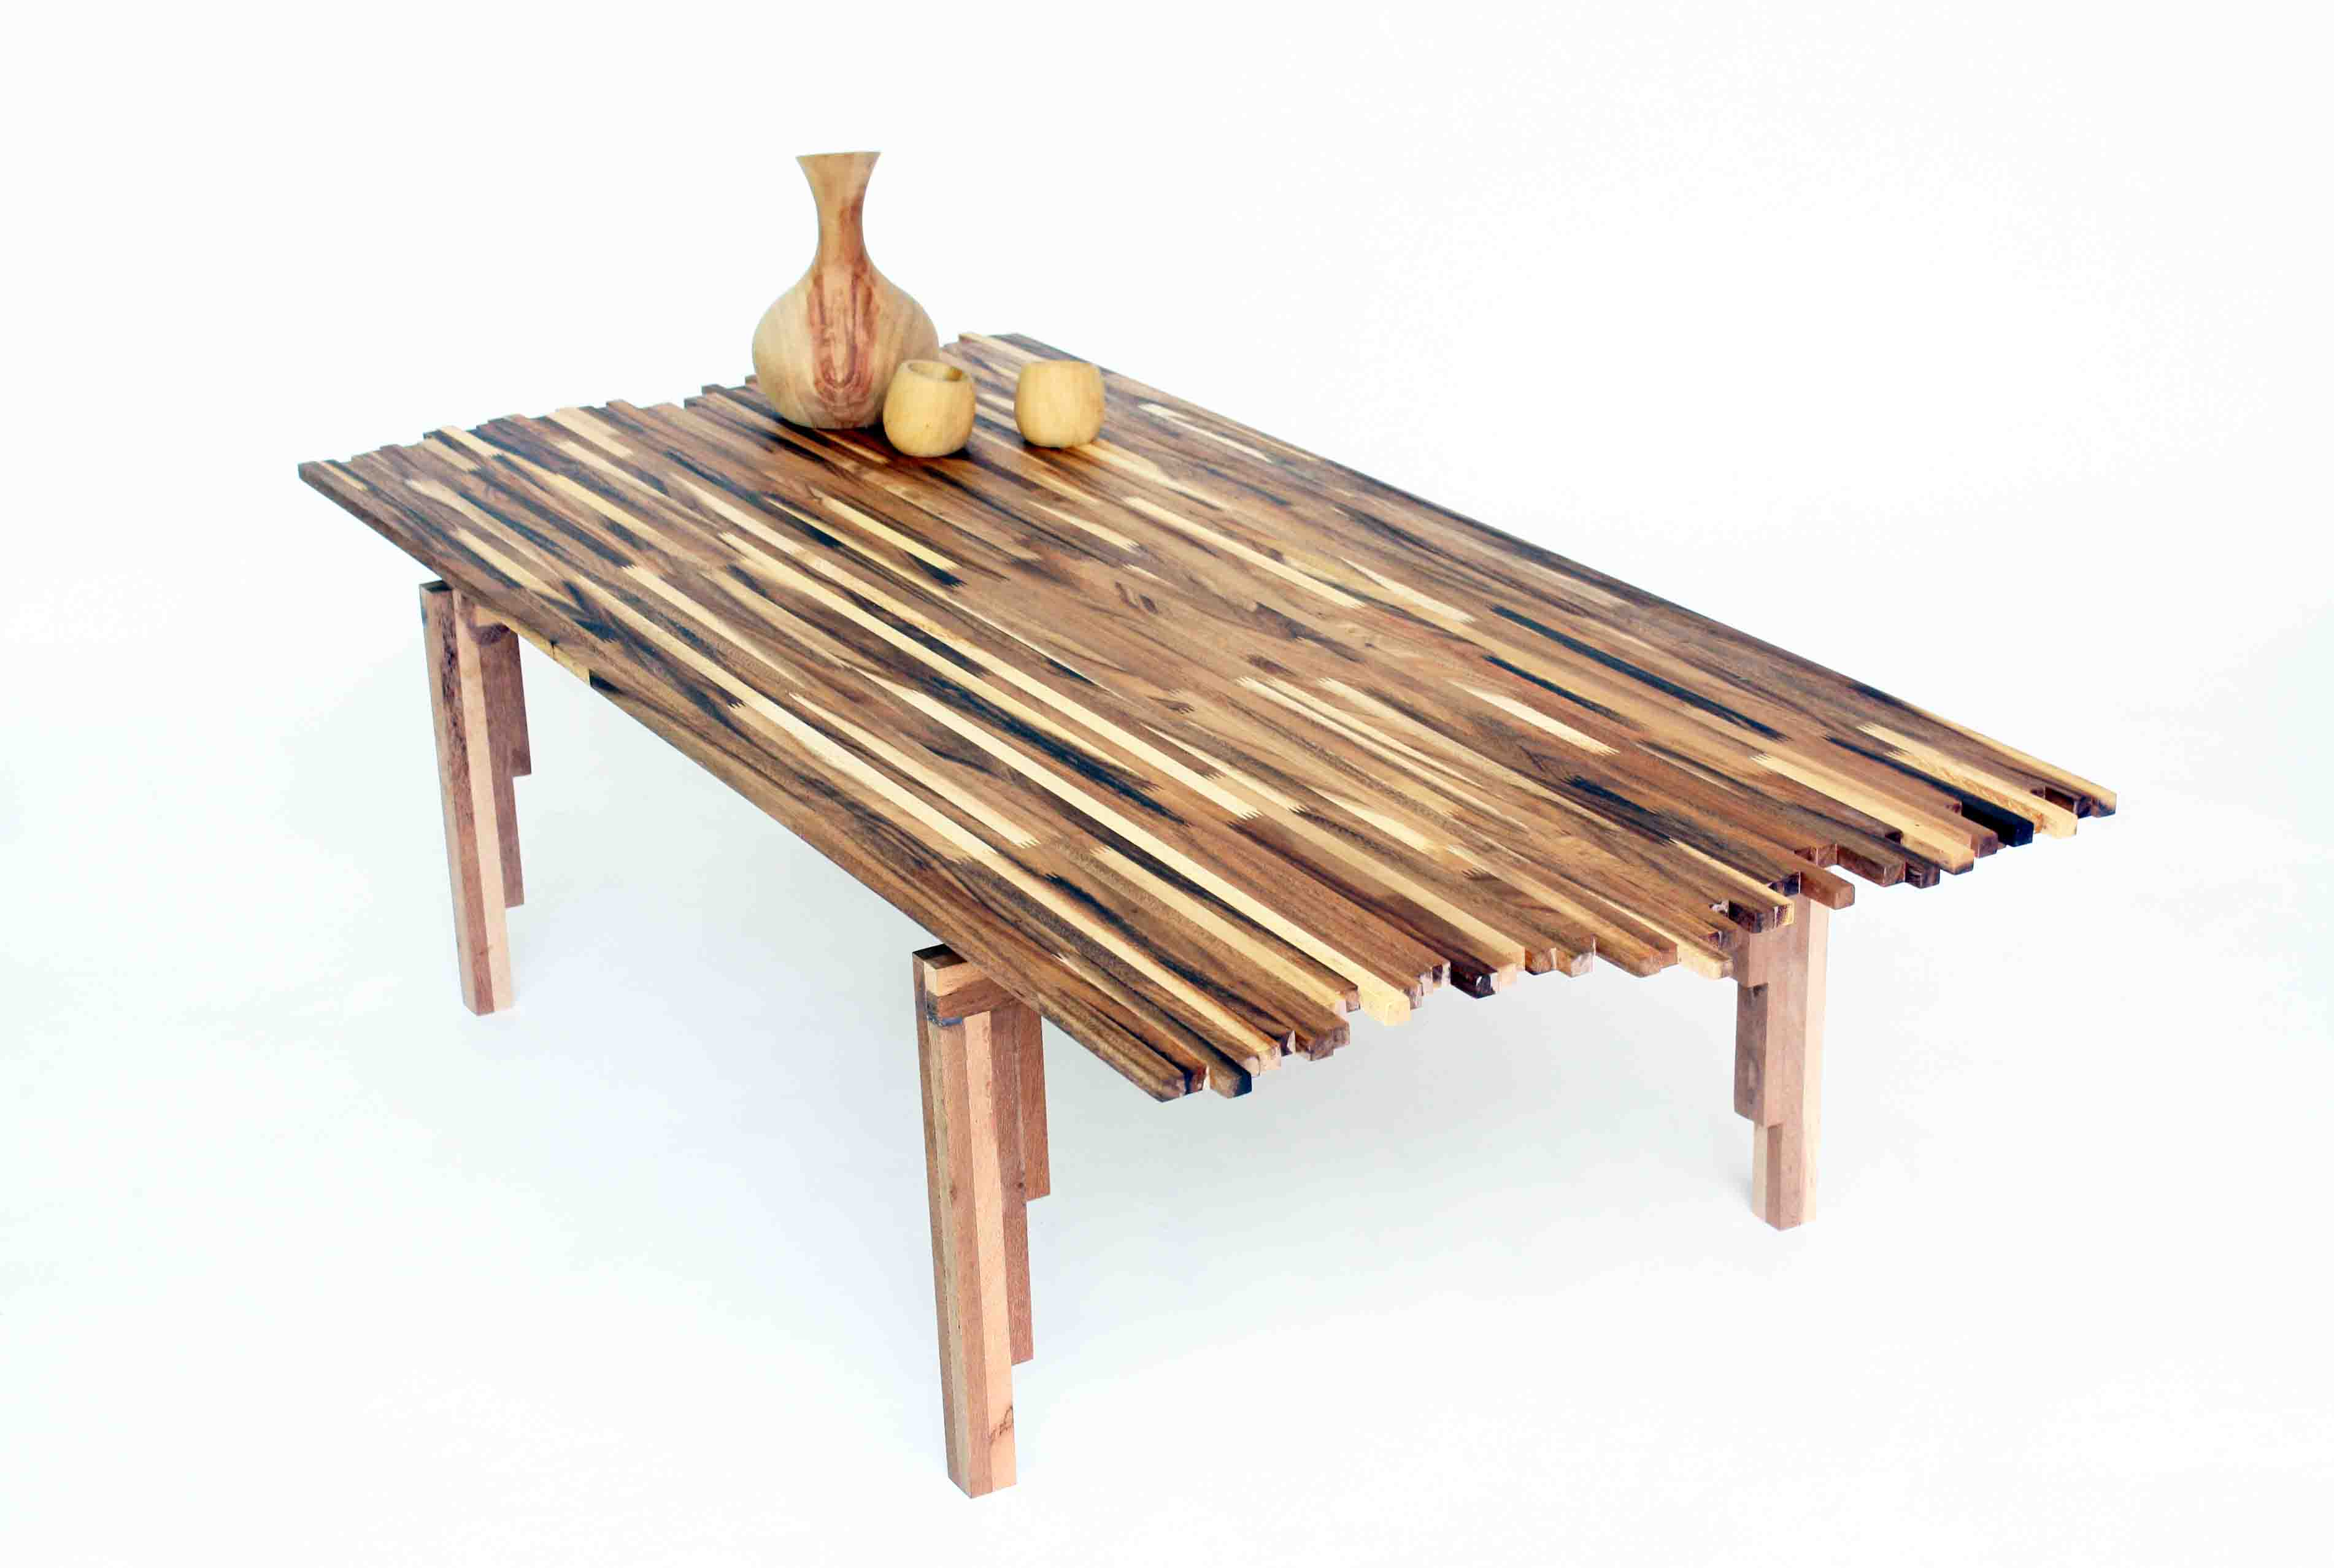 beautiful wildfire table made from multitone scraps of acacia wood inhabitat green design innovation green building